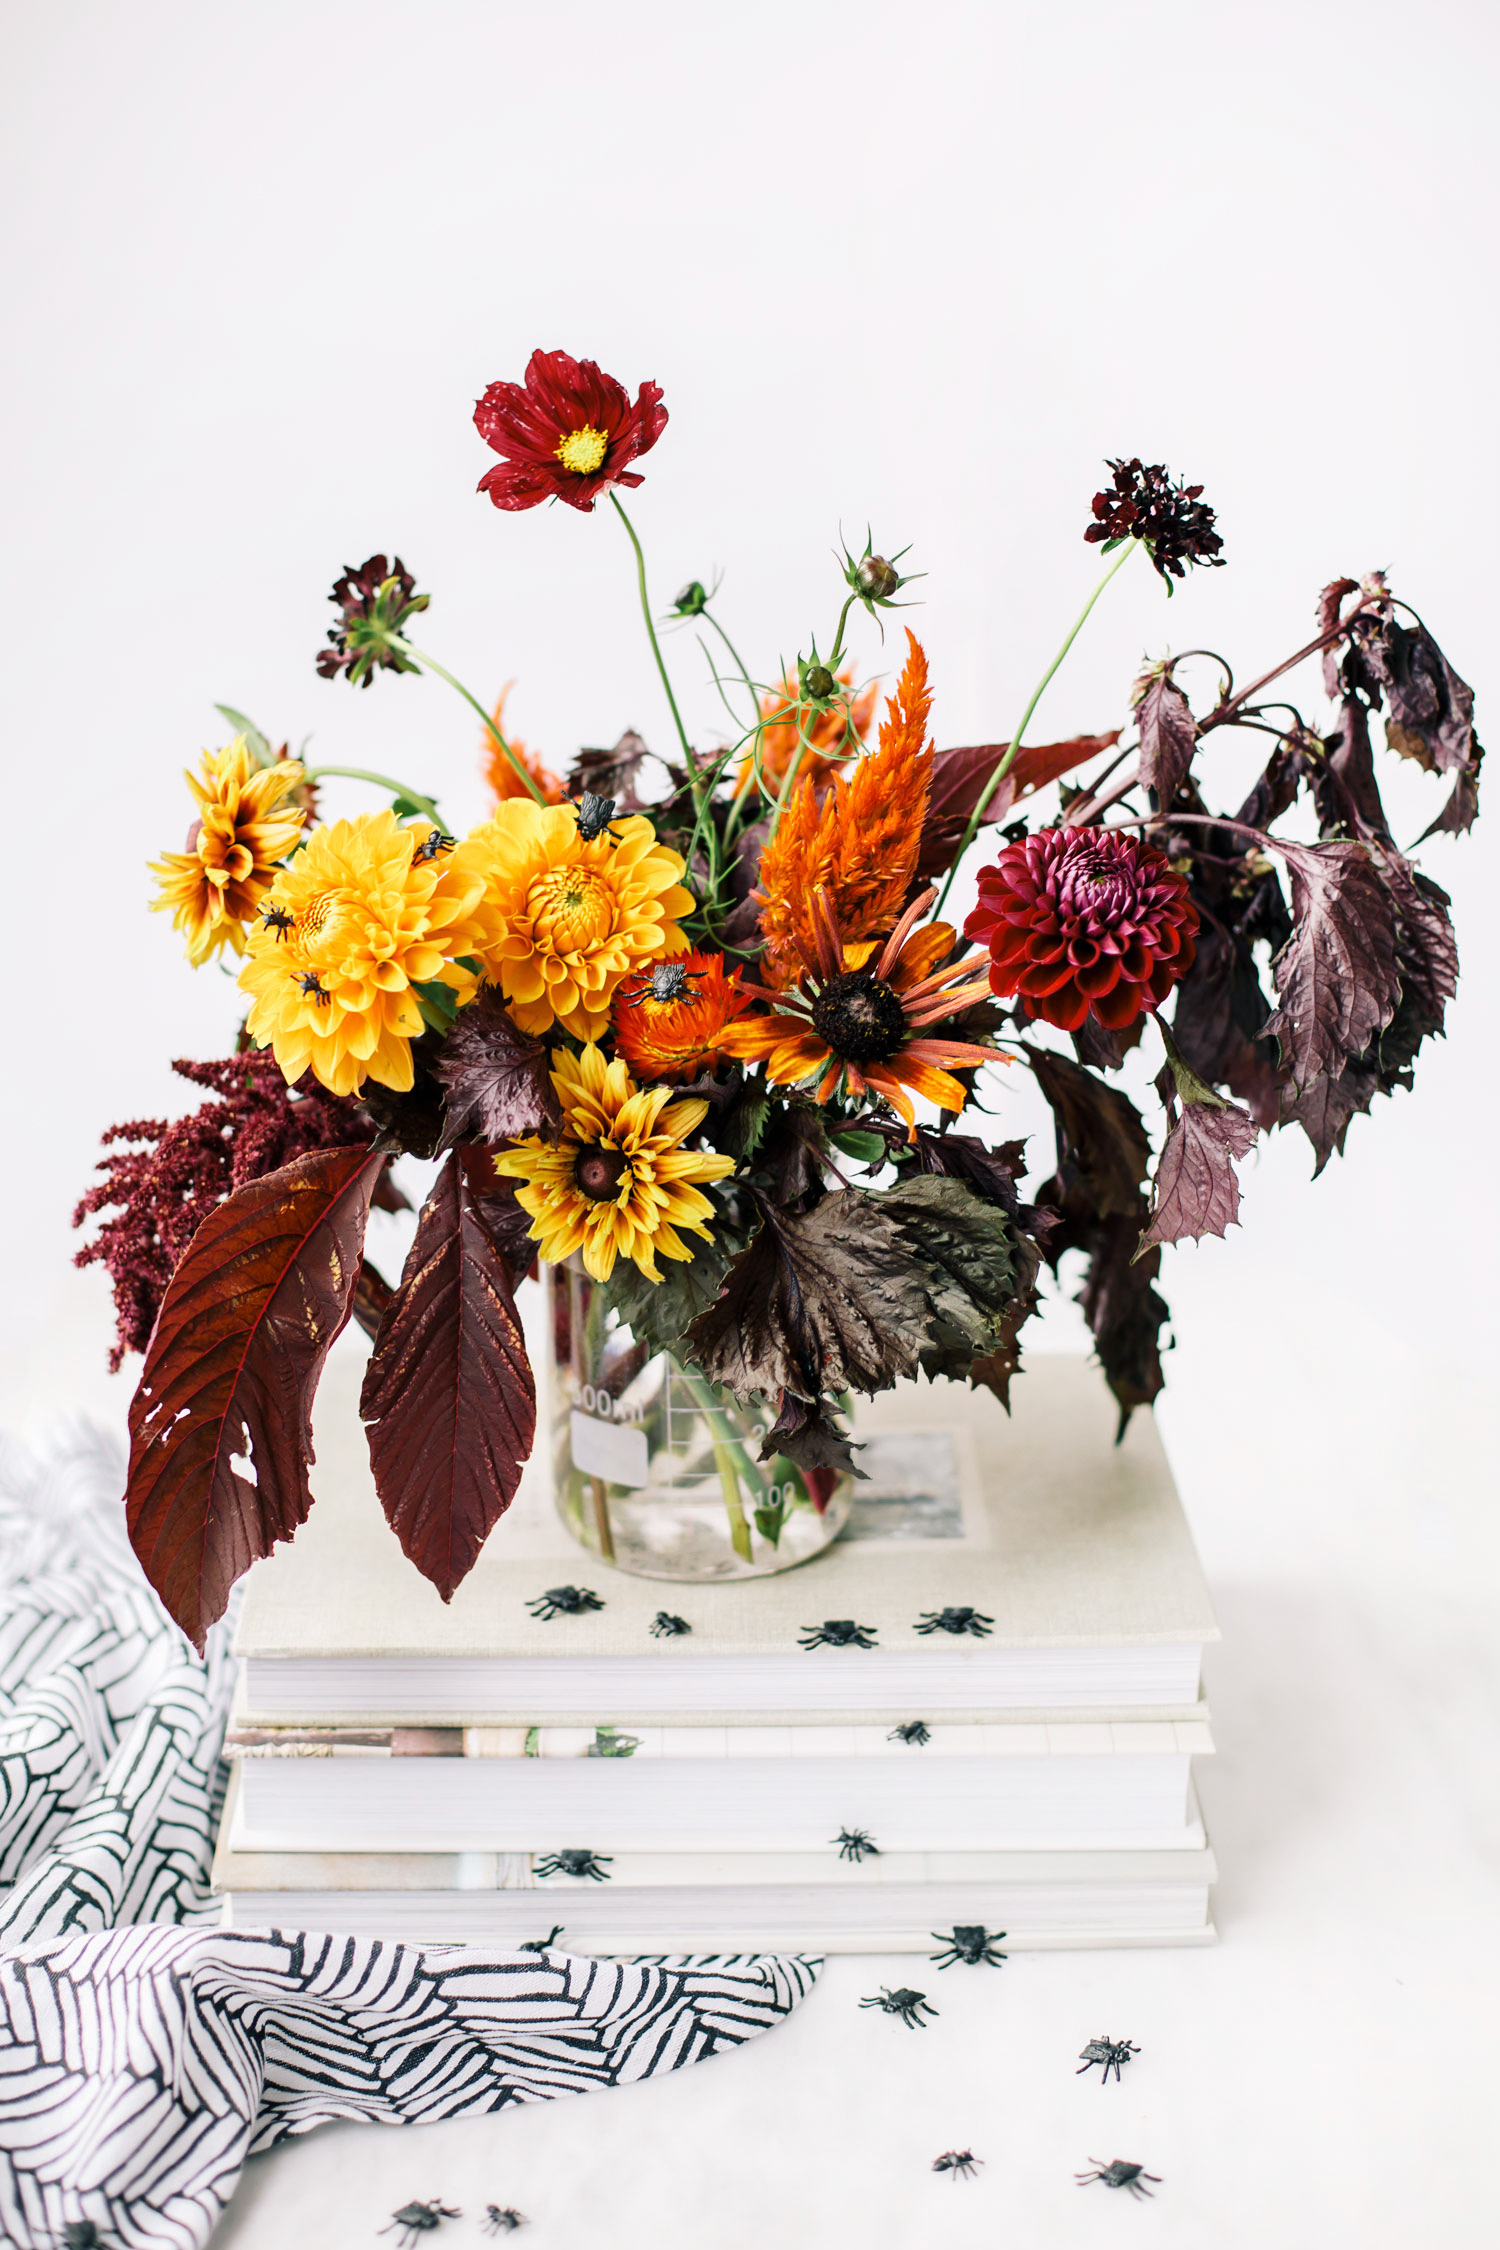 How To Make An Eerie Halloween Flower Arrangement The Blondielocks Life Style